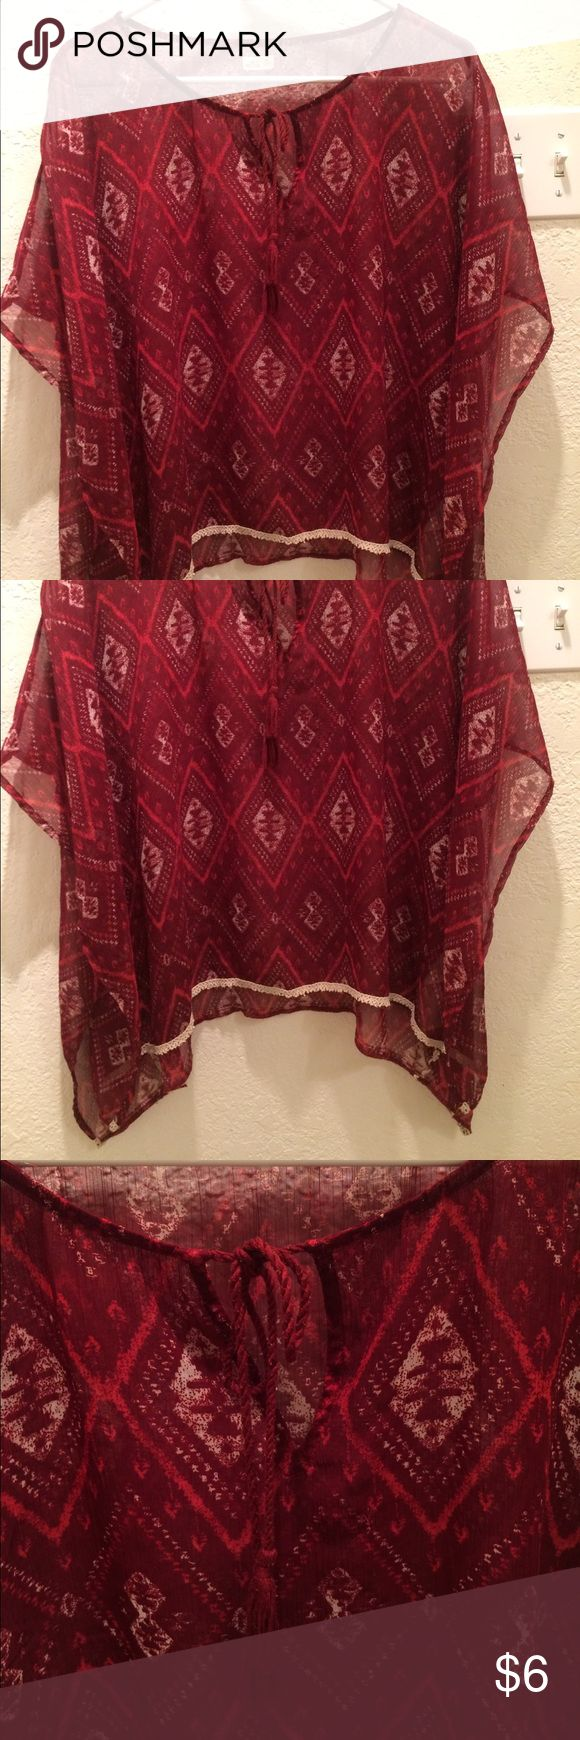 Sheer batwing style top from Hollister Sheer top  with tie detail in the front and beige lace type detail at the bottom. In good condition no holes or stains. The sleeves are a batwing style. 1OO% polyester. Size Small. Burgundy in color with red and beige details and a tribal style print Hollister Tops Blouses